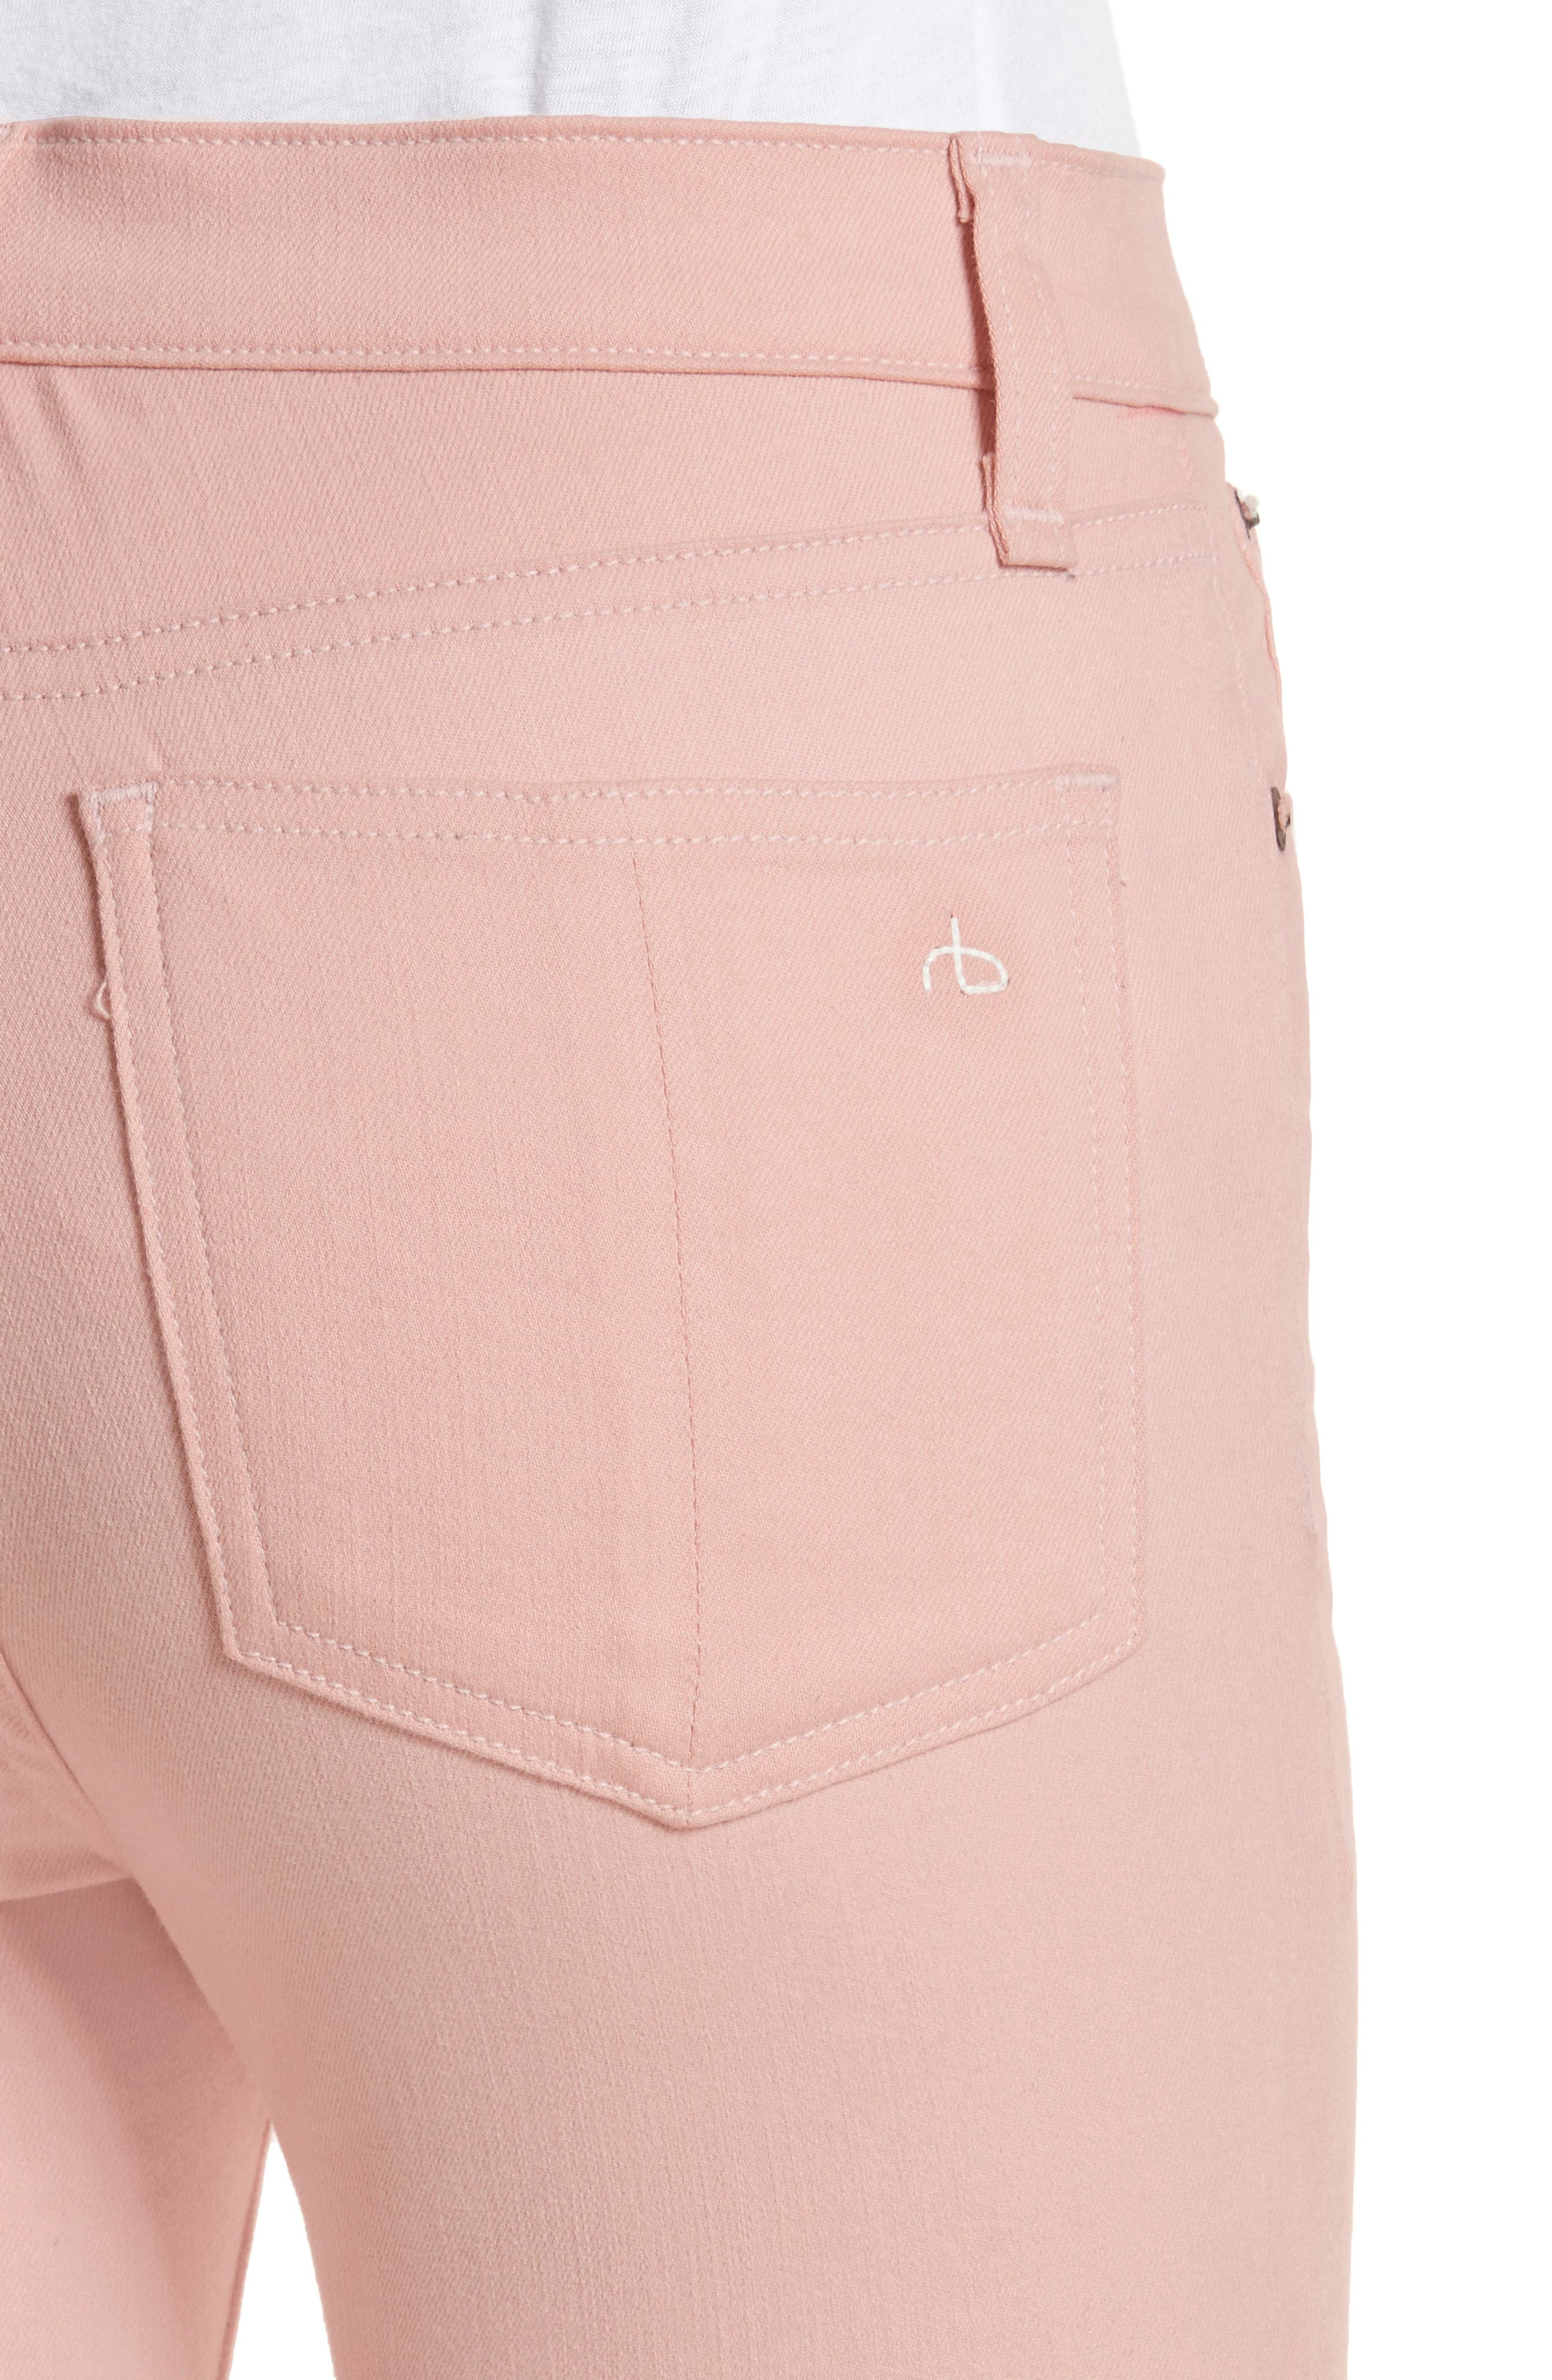 High Waist Skinny Jeans,                             Alternate thumbnail 4, color,                             Blush Twill